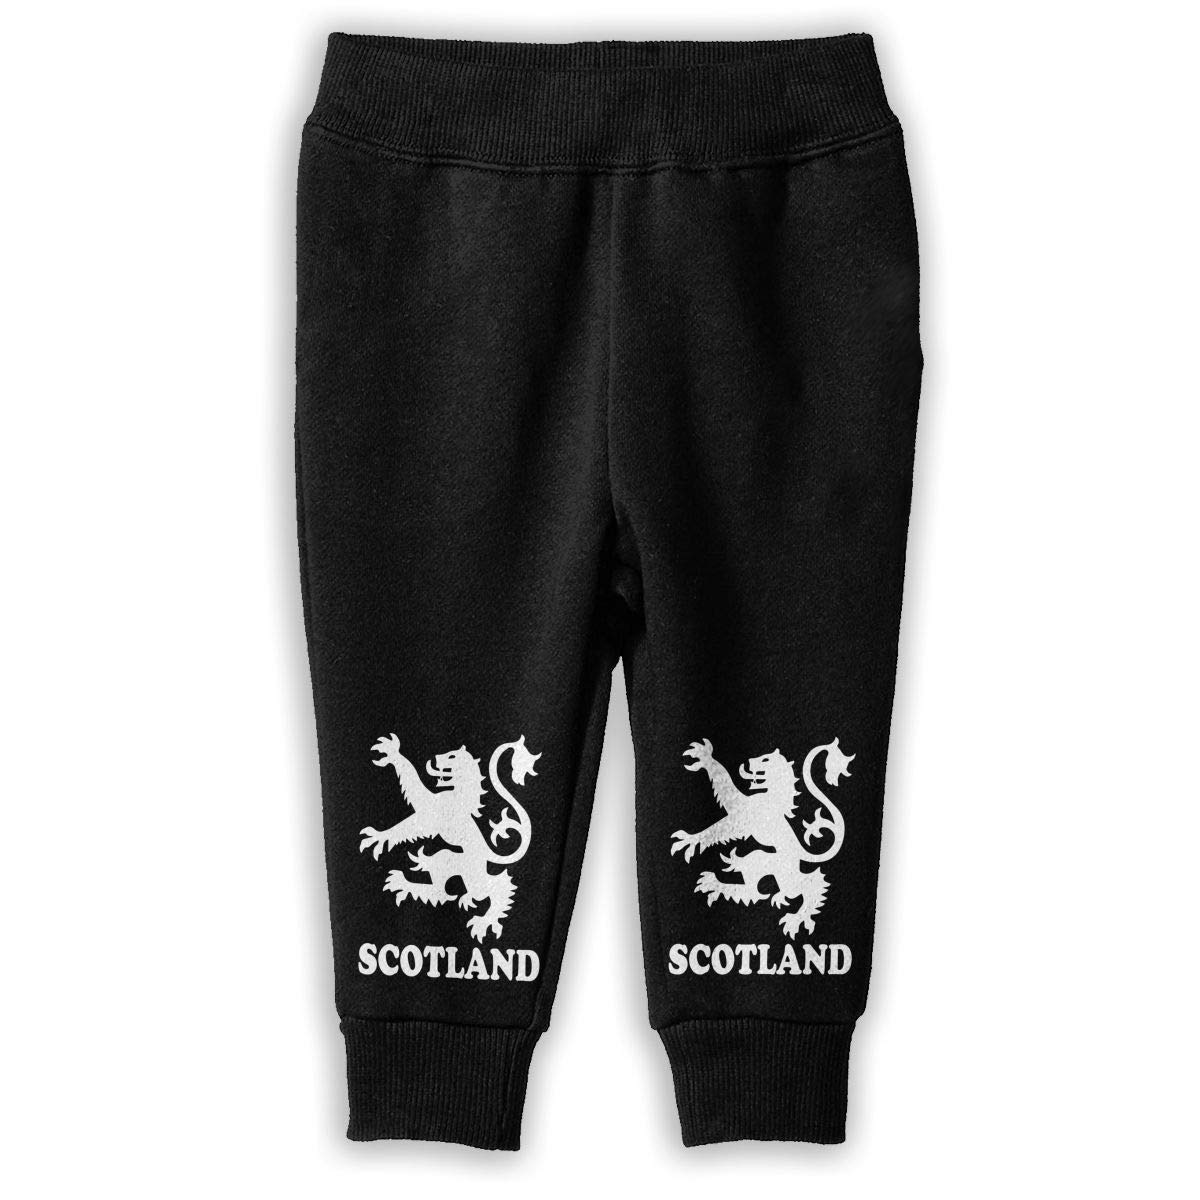 Stand for The Flag Kneel for The Fallen 3 Sweatpants Little Girls Sports Pants